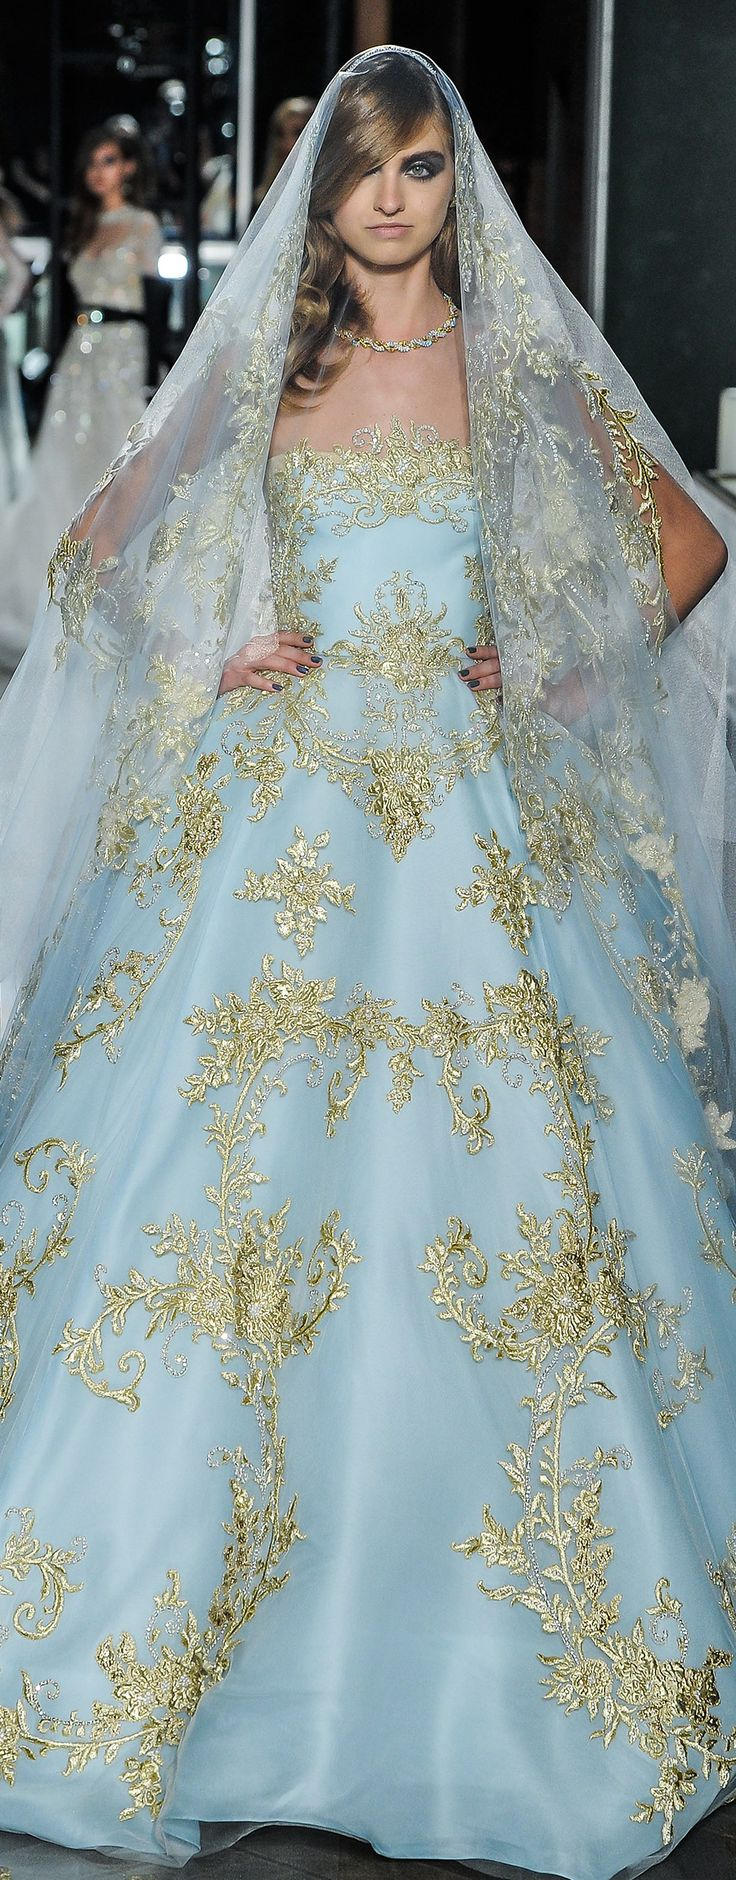 reem acra spring 2018 bridal strapless straight across full embellishment blue color princess ball gown wedding dress chapel train (24couture) zv -- Reem Acra Spring 2018 Wedding Dresses #wedding #bridal